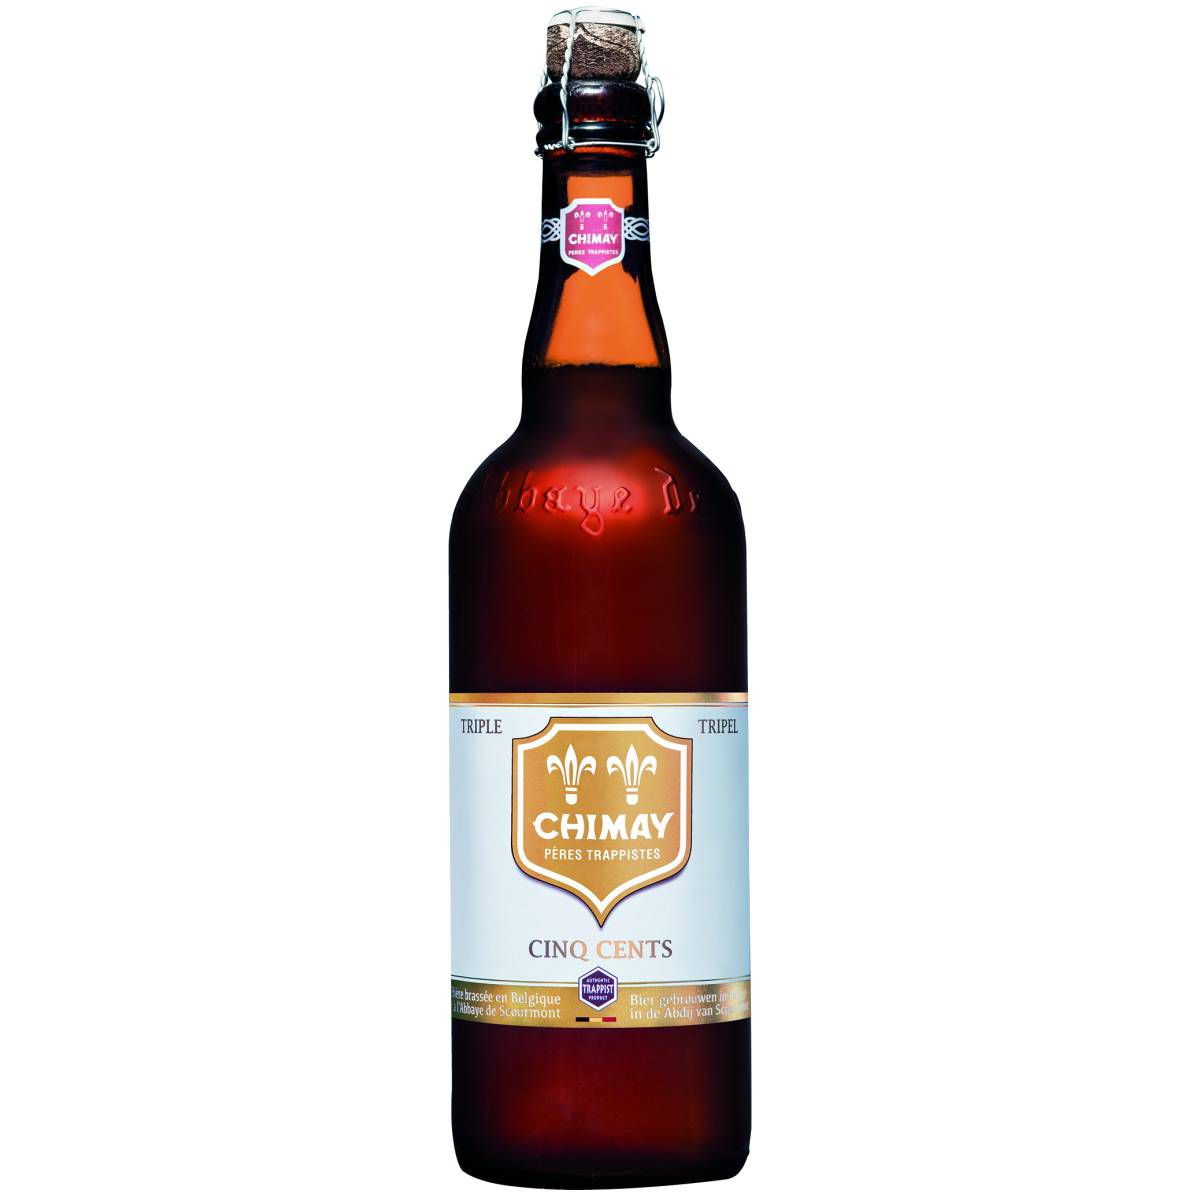 Chimay Cinq Cents (Tripel) 750ml